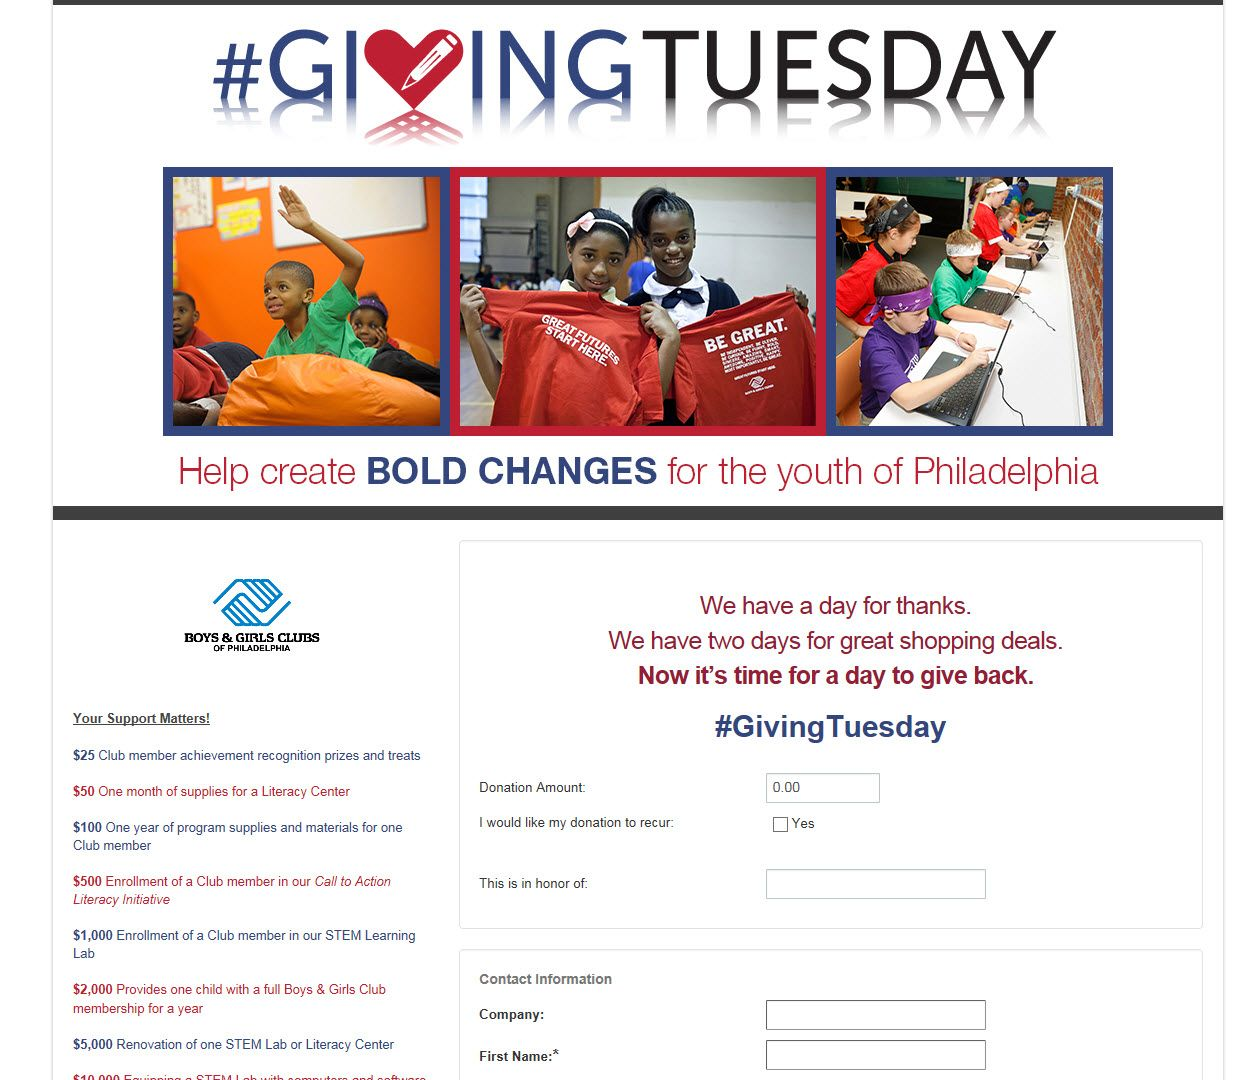 BGC 2016 Giving Tuesday entry Nice job of showing where the money goes https://bgcphila.ejoinme.org/?tabid=566945